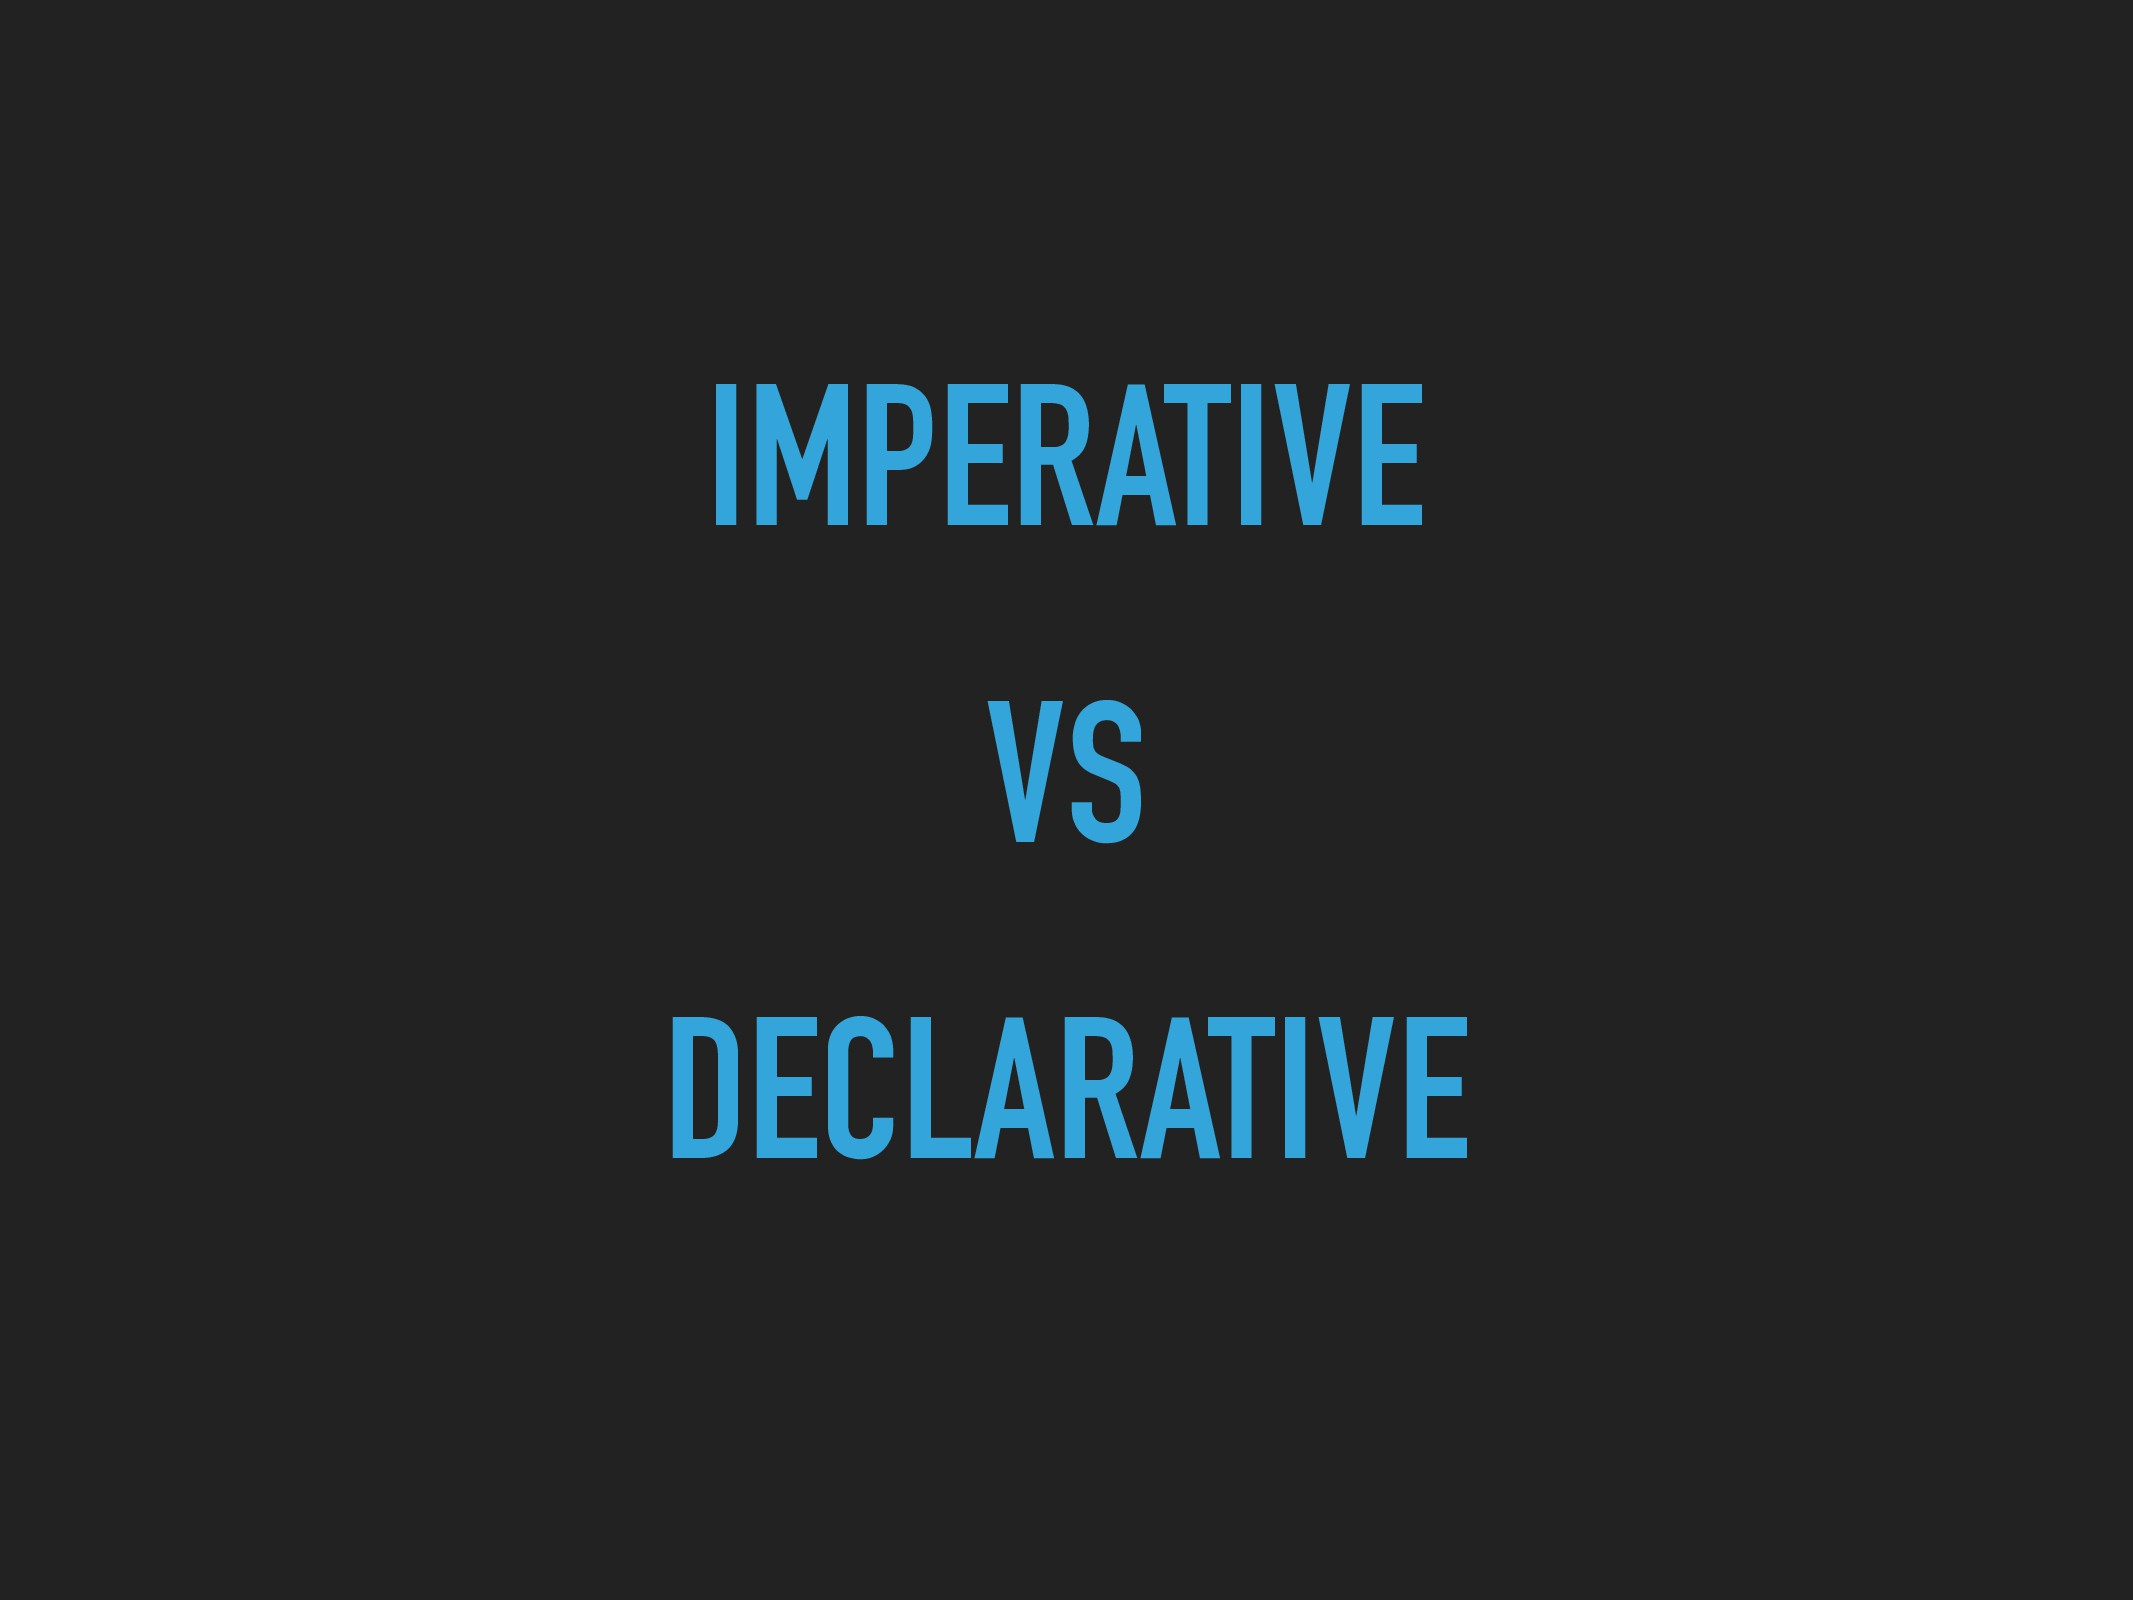 IMPERATIVE